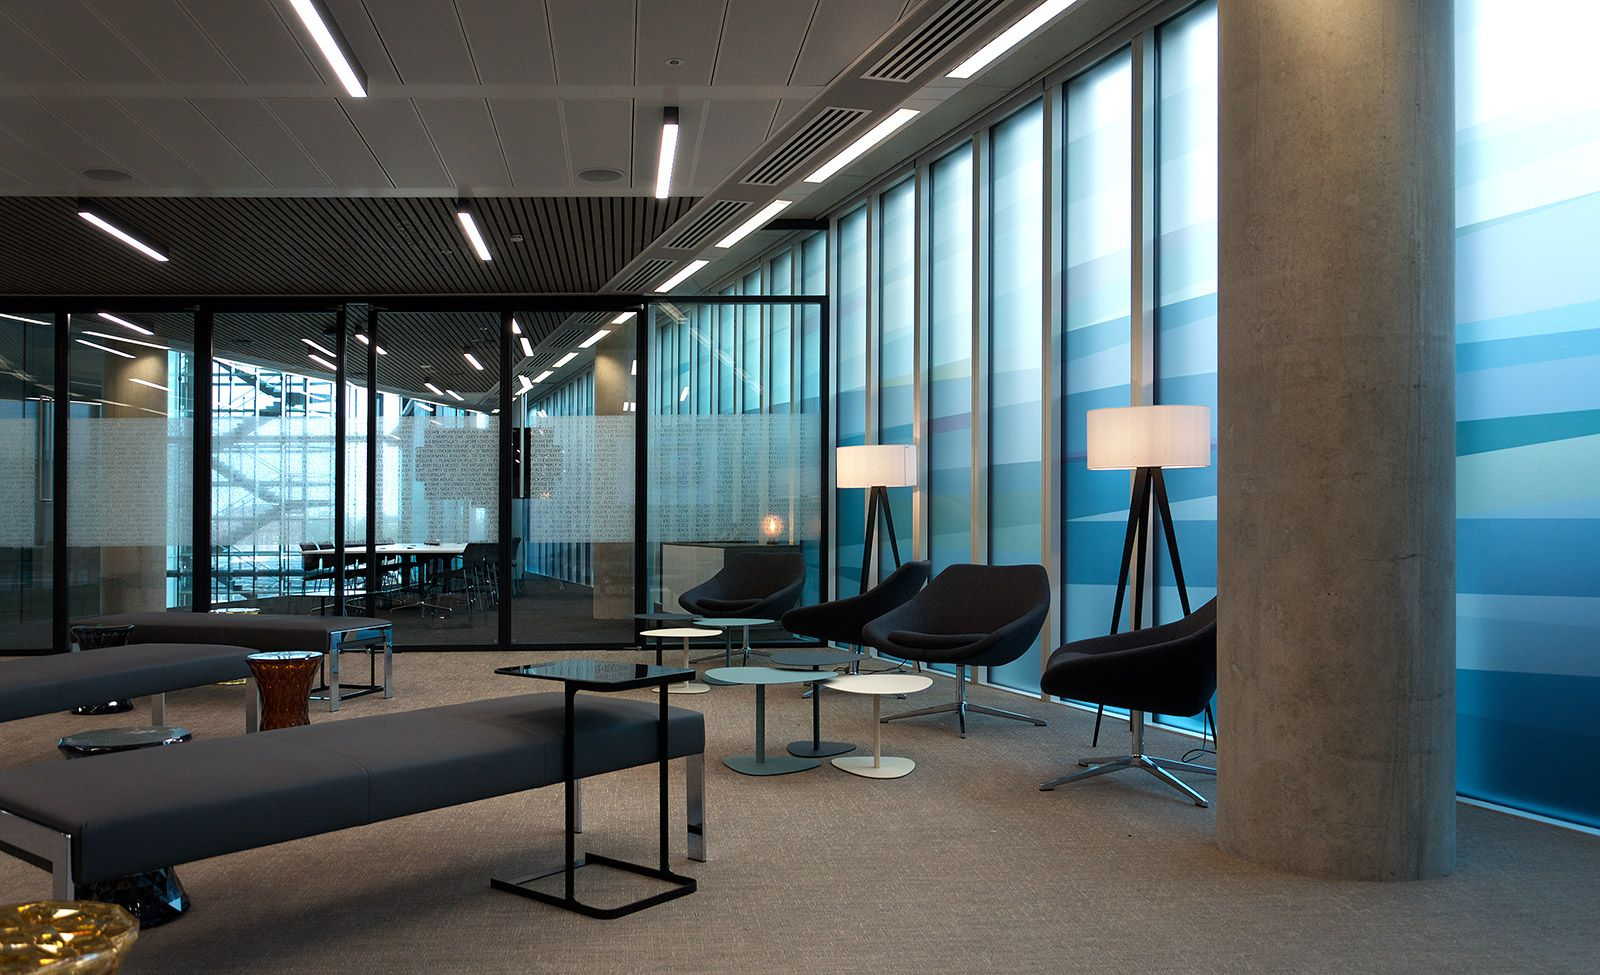 contemporary office interiors. Contemporary Office Interiors By Magnus + Associates, Meeting Room, Conference Collaboration Space. Graphic Artwork AubreyLaret.com A